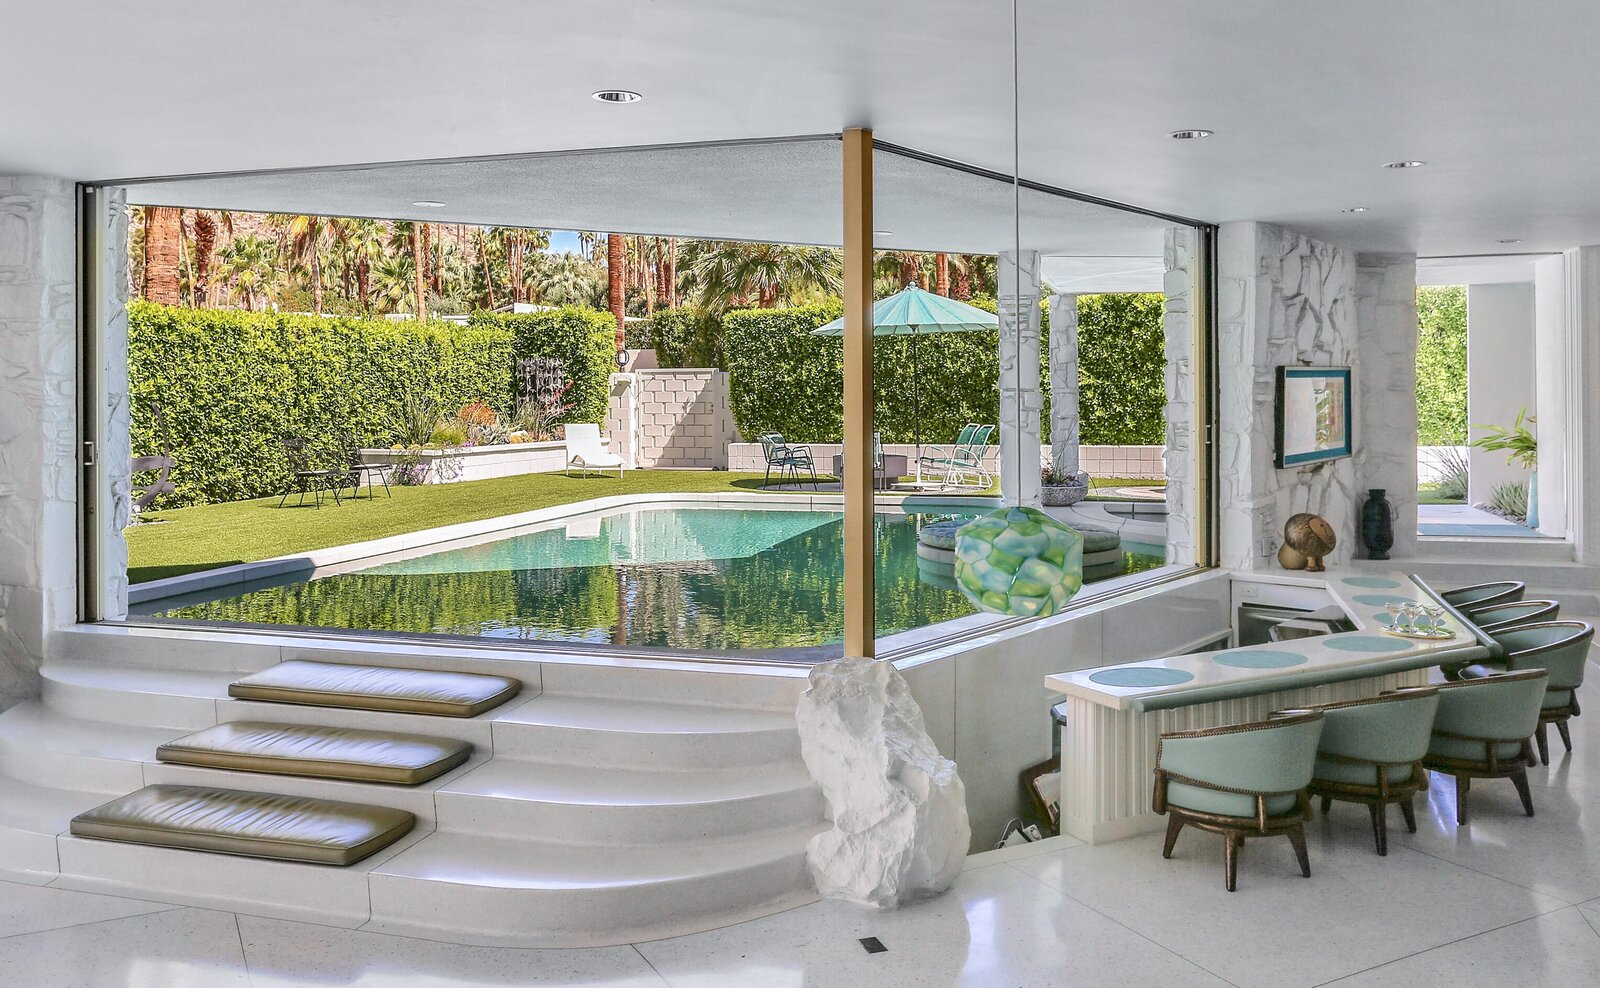 The pool can be entered without going outdoors – an unusual feature requested when it was built